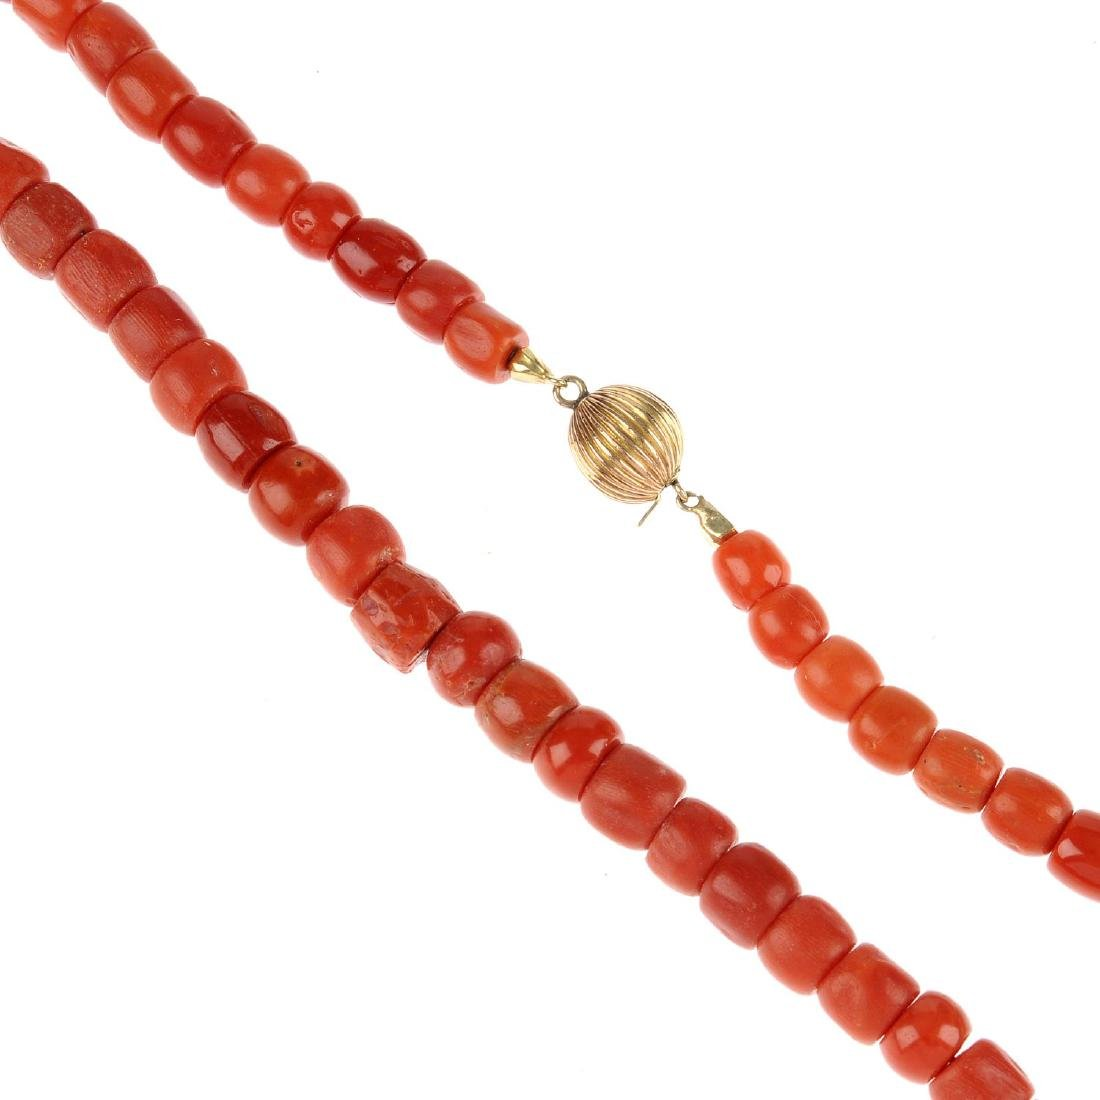 A coral necklace. The single row of barrel-shape beads,